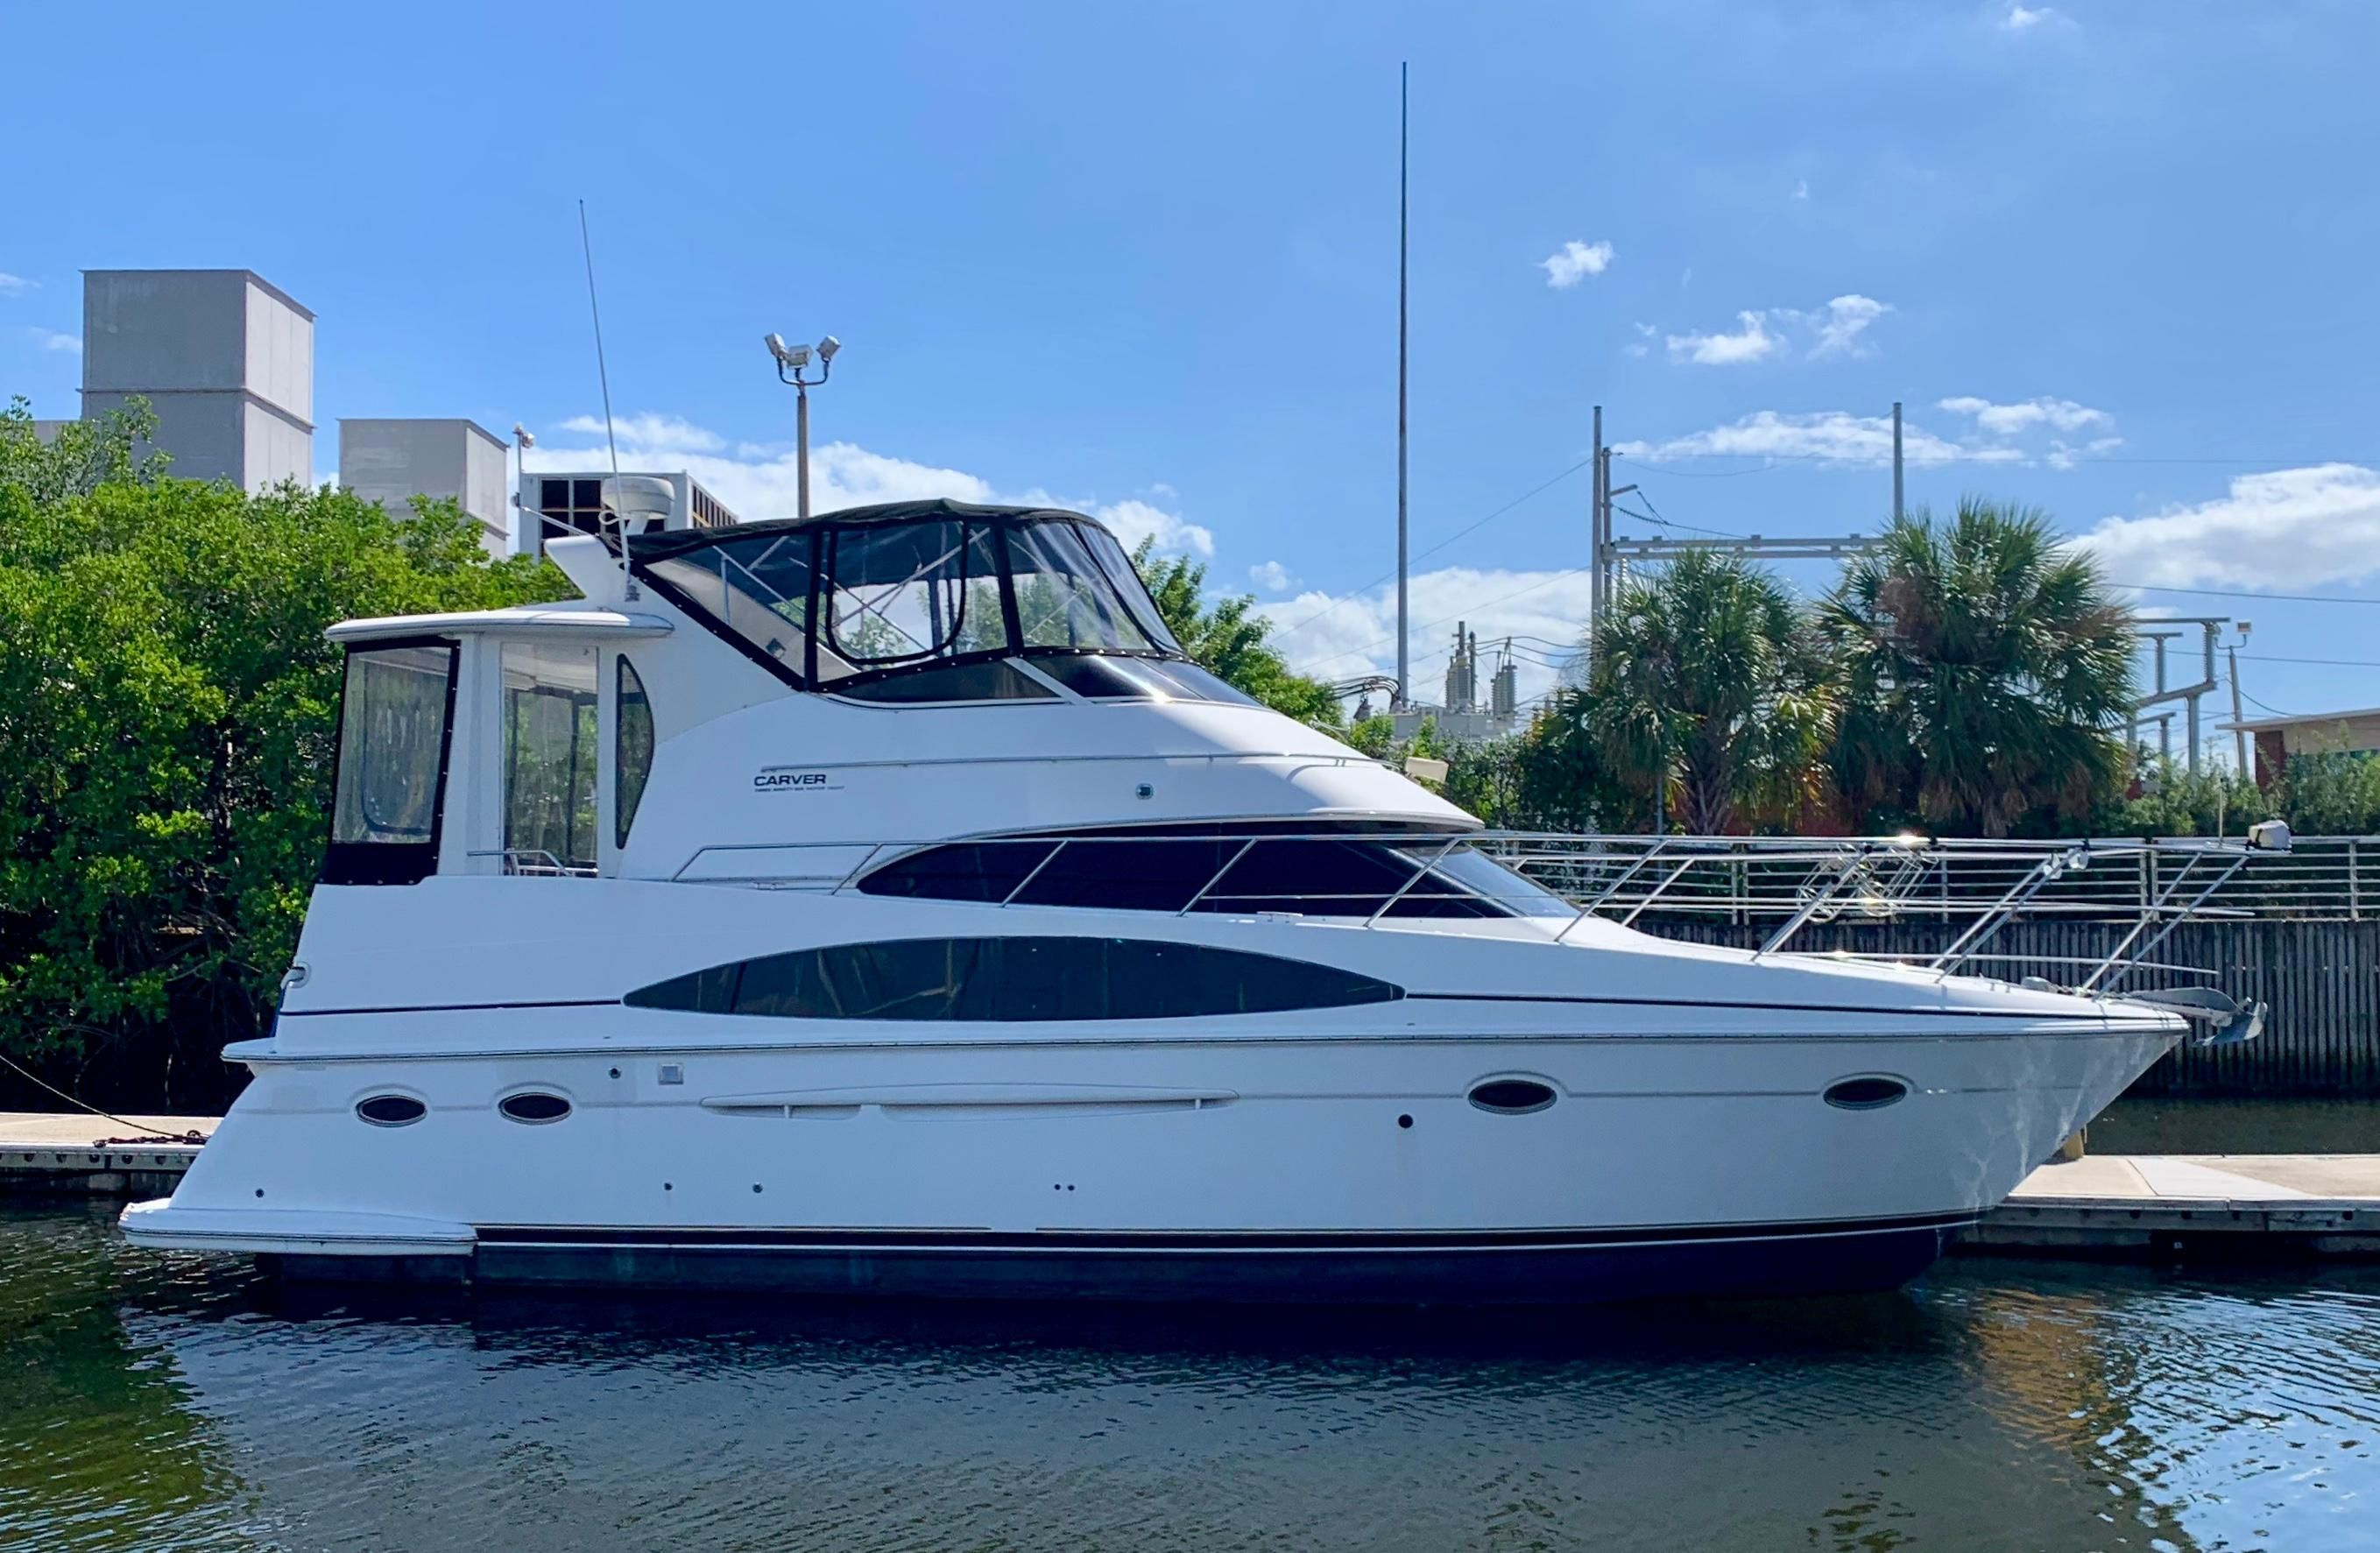 2001 Carver 396 Motor Yacht for sale YachtWorld Yacht